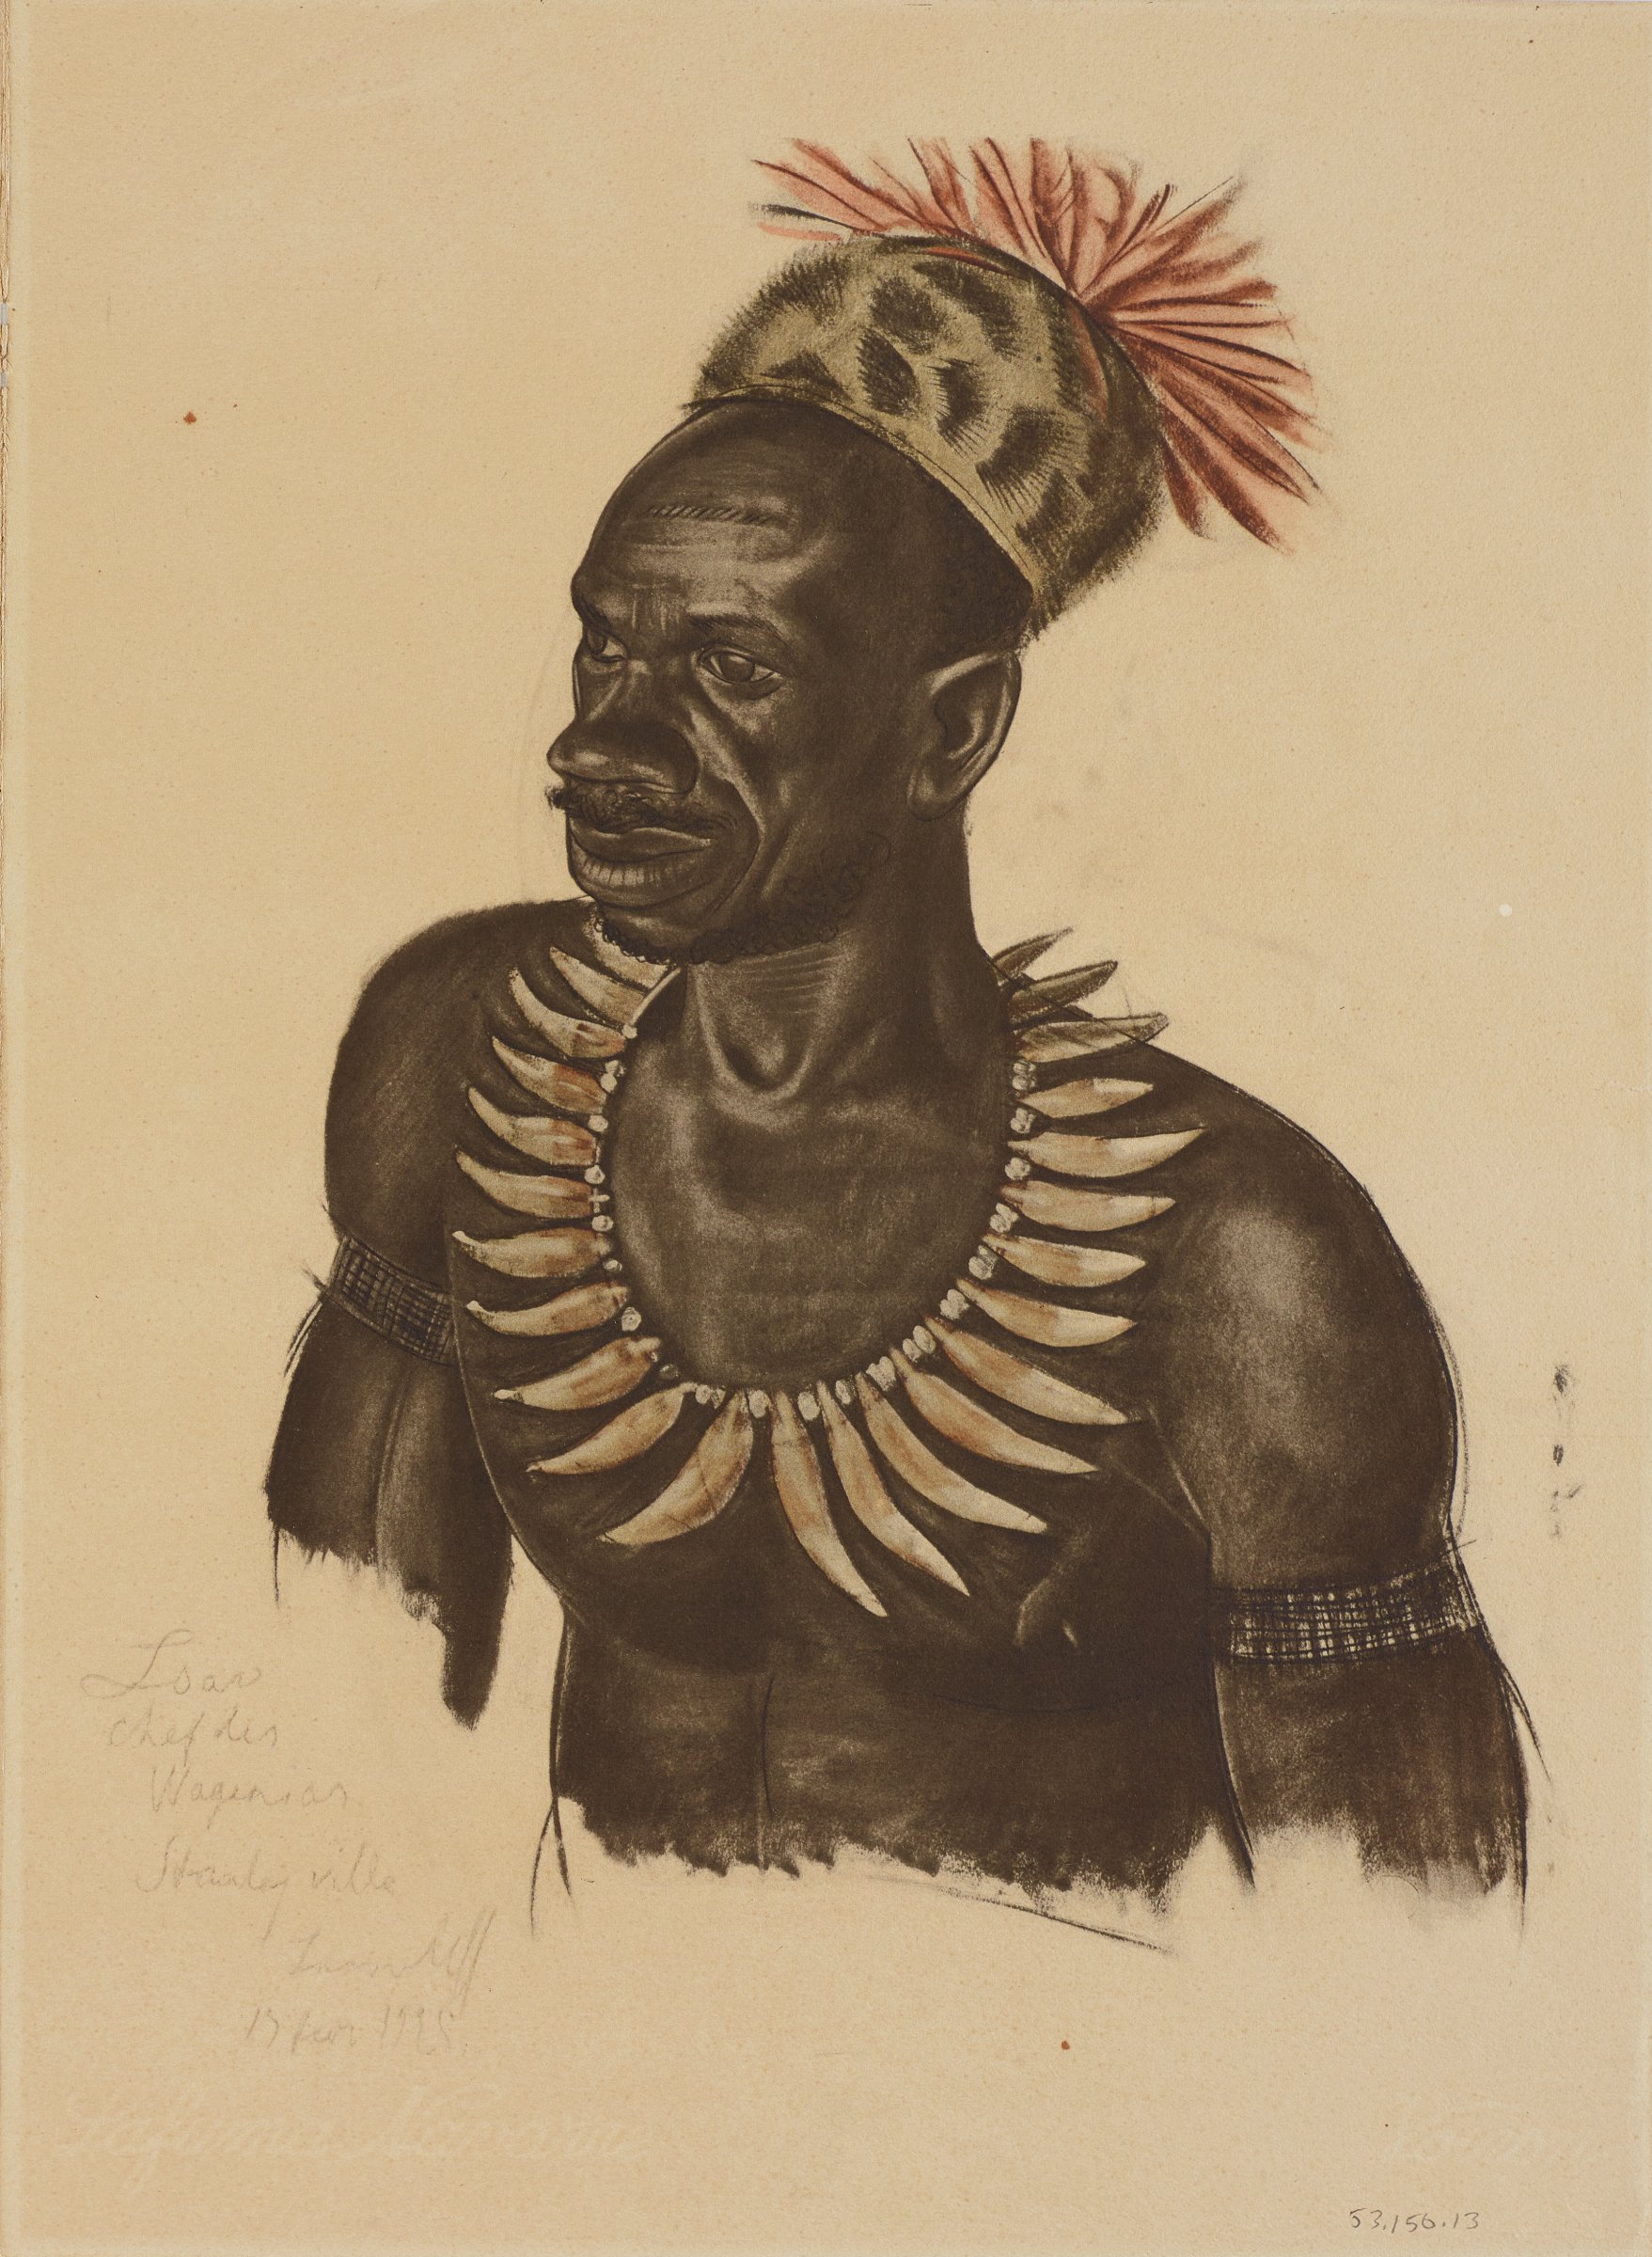 Half length portrait of a male figure who wears an elaborate necklace, an armband on each arm, and a spotted hat with red feathers. This series is a product of Jacovleff's involvement in the Expédition Citroën Centre-Afrique.